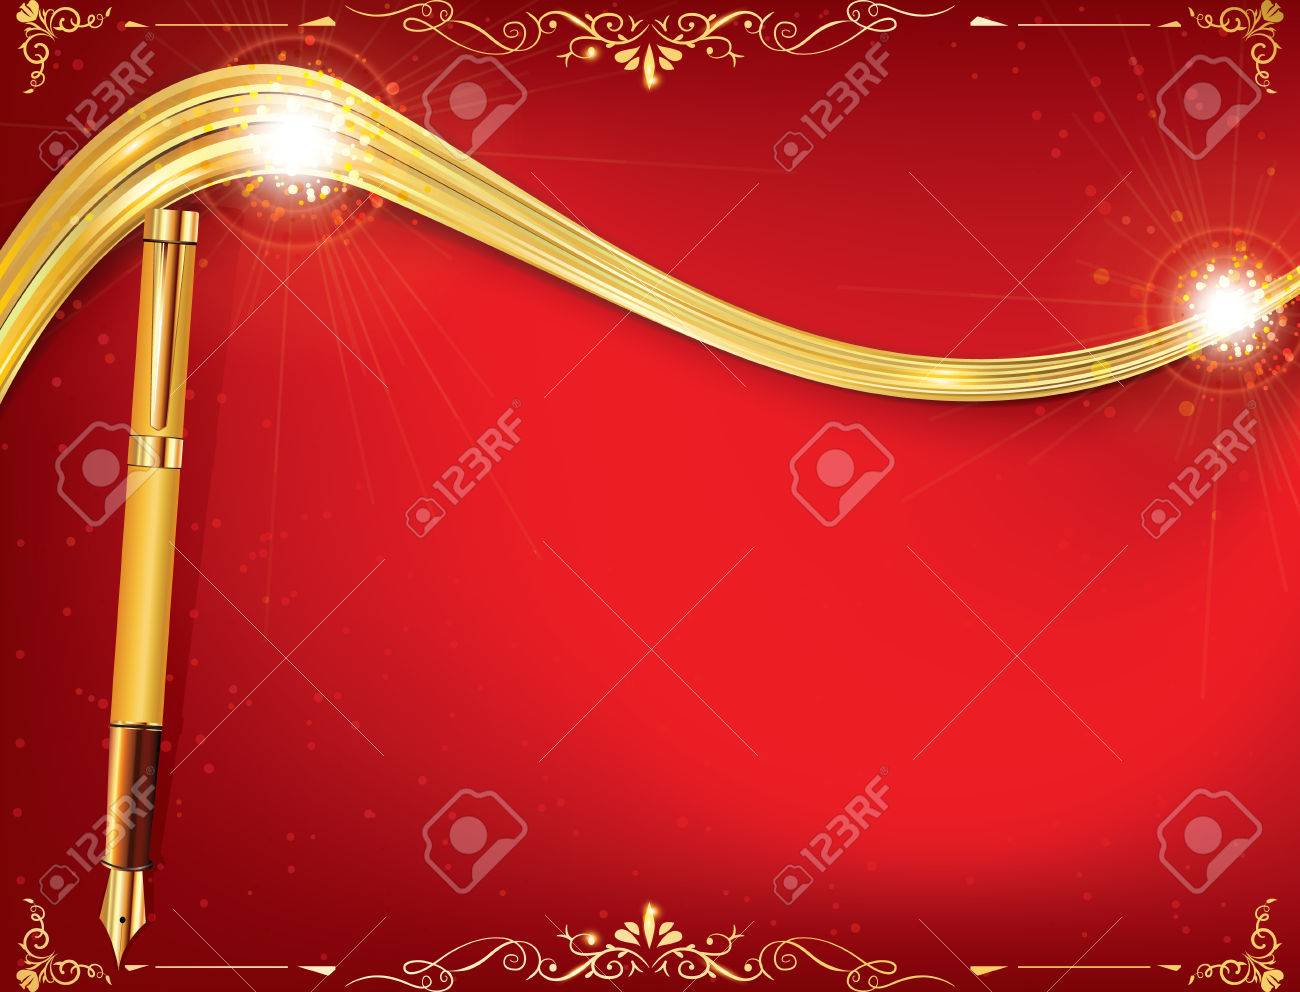 Red Celebration Background For Any Occasion: Winter Holidays ...